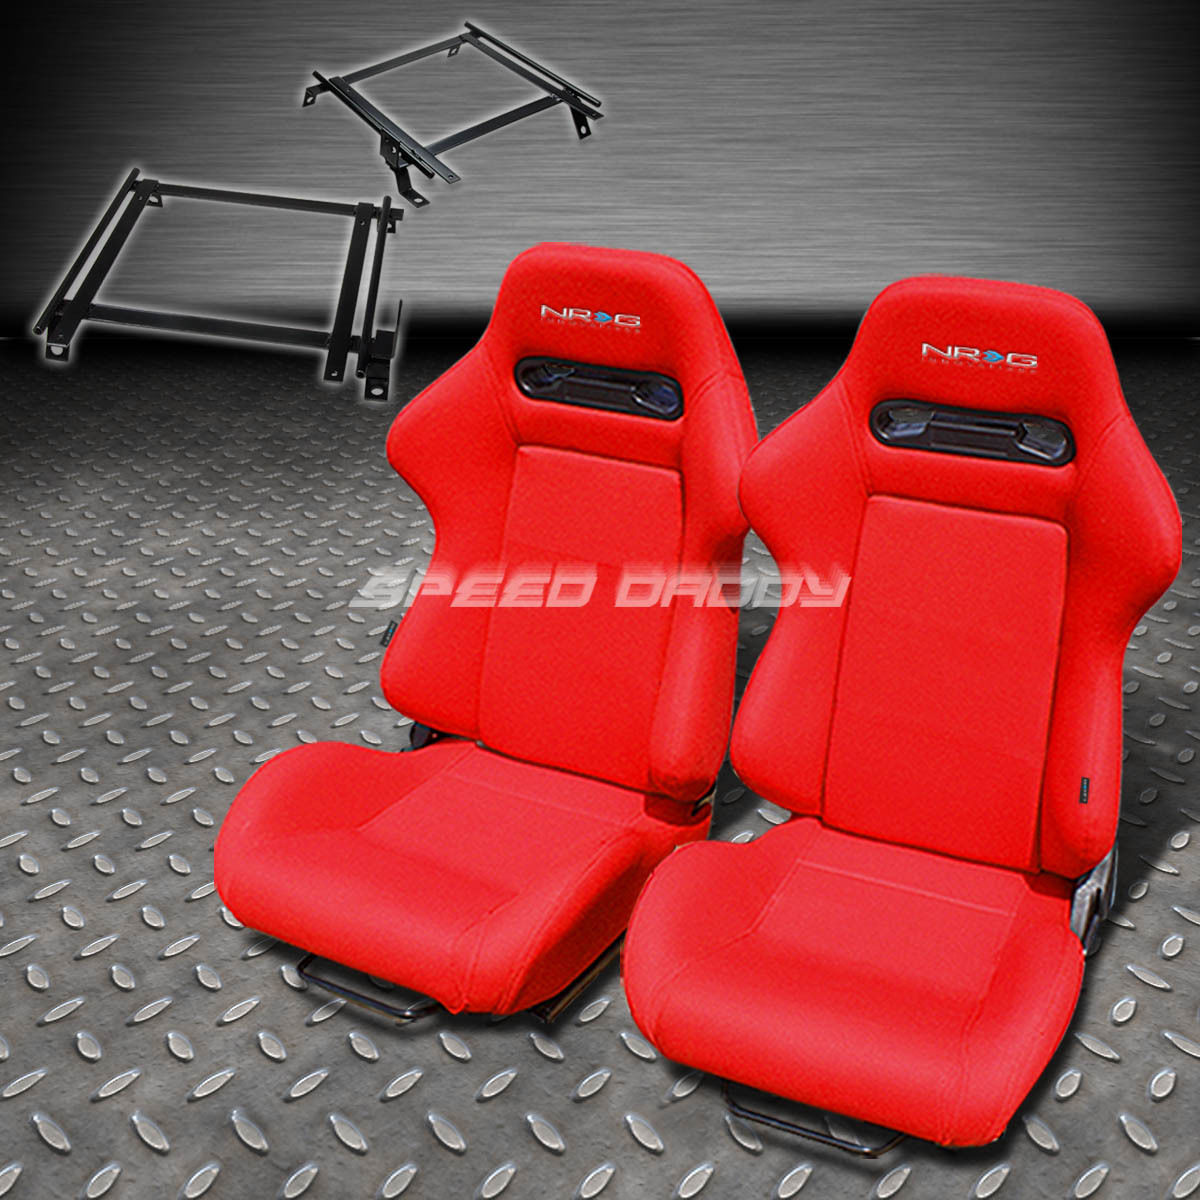 pair nrg type r style red cloth racing seat bracket for 90 93 acura rh ebay com 2003 Acura RSX Seat Rail Acura RSX Interior